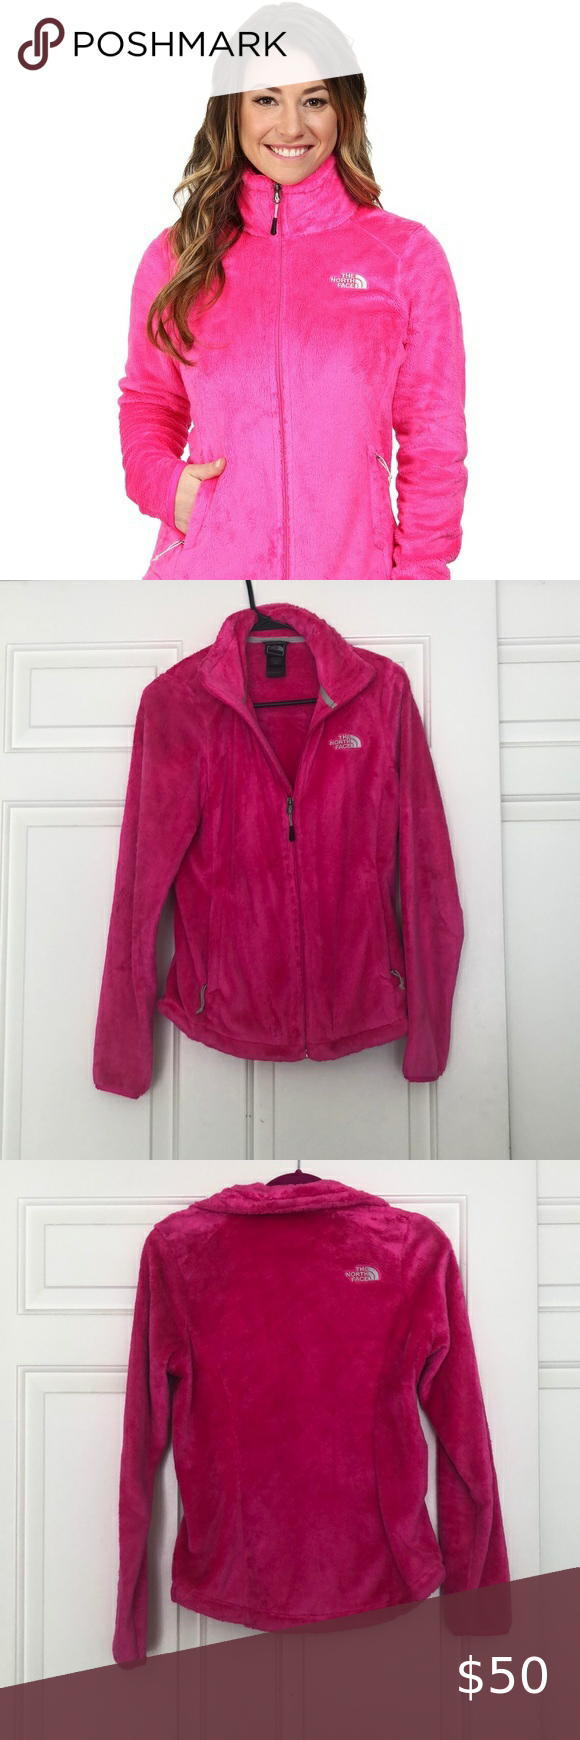 North Face Osito Jacket Hot Pink Clothes Design Jackets Hot Pink [ 1740 x 580 Pixel ]